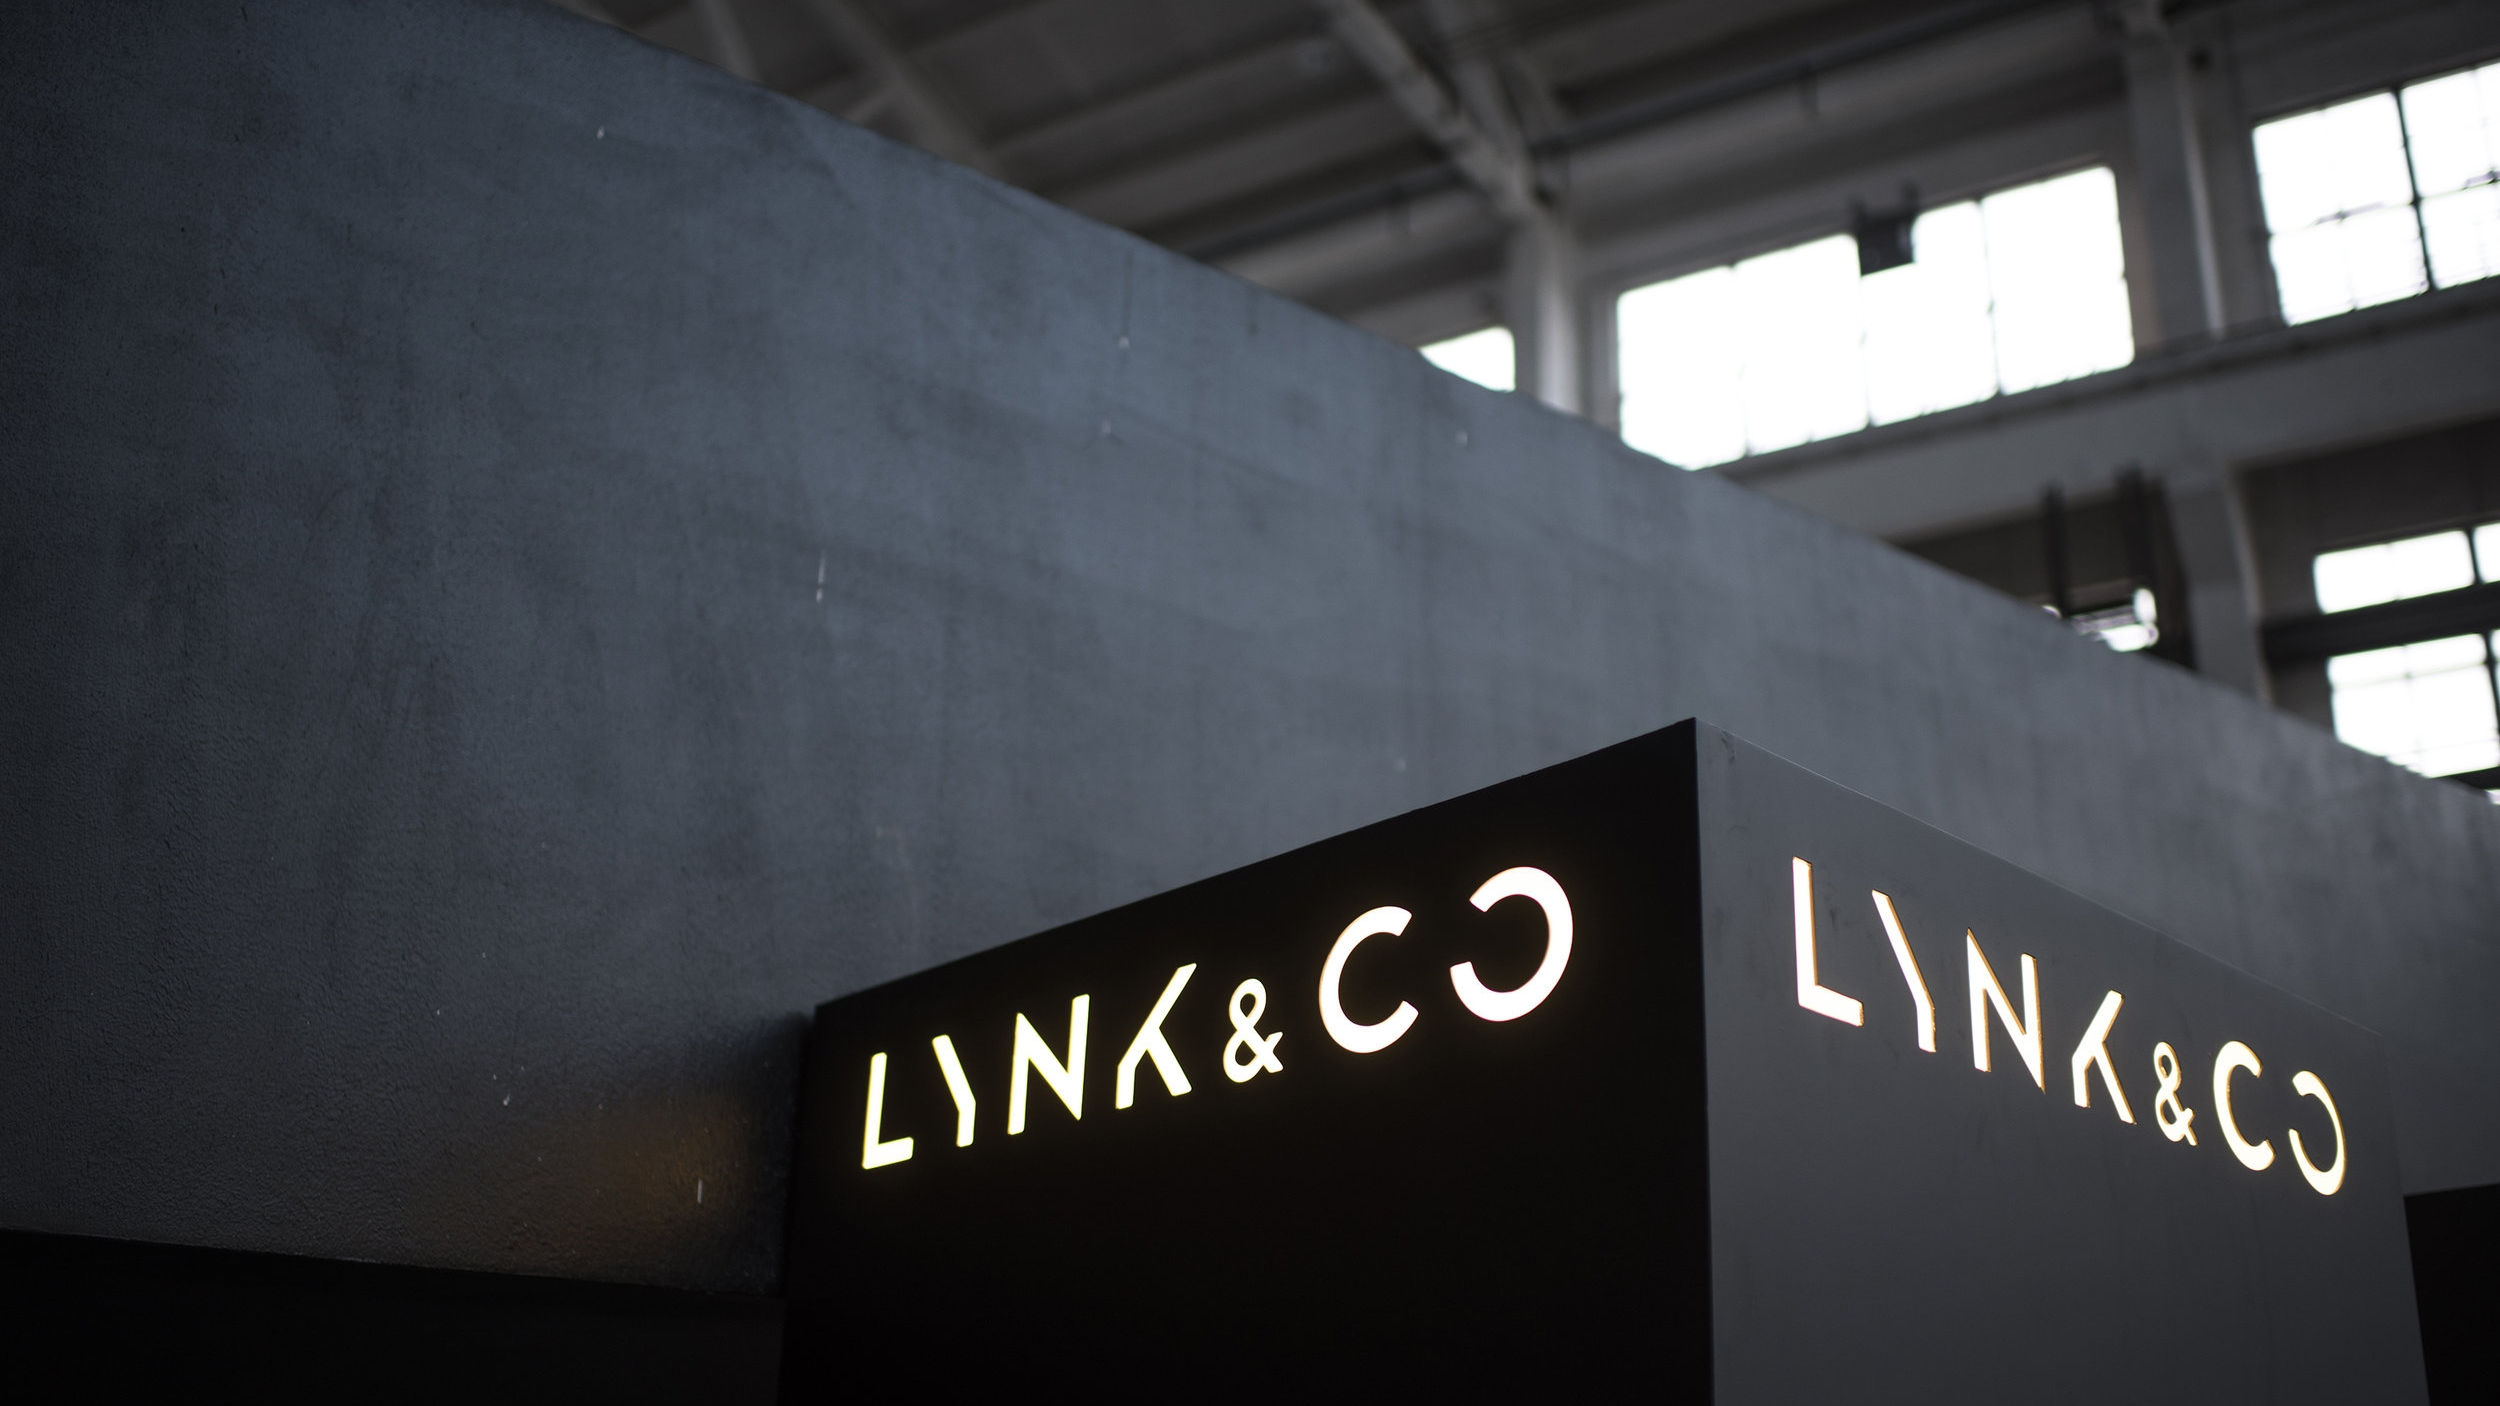 Lynk & Co / Shanghai -